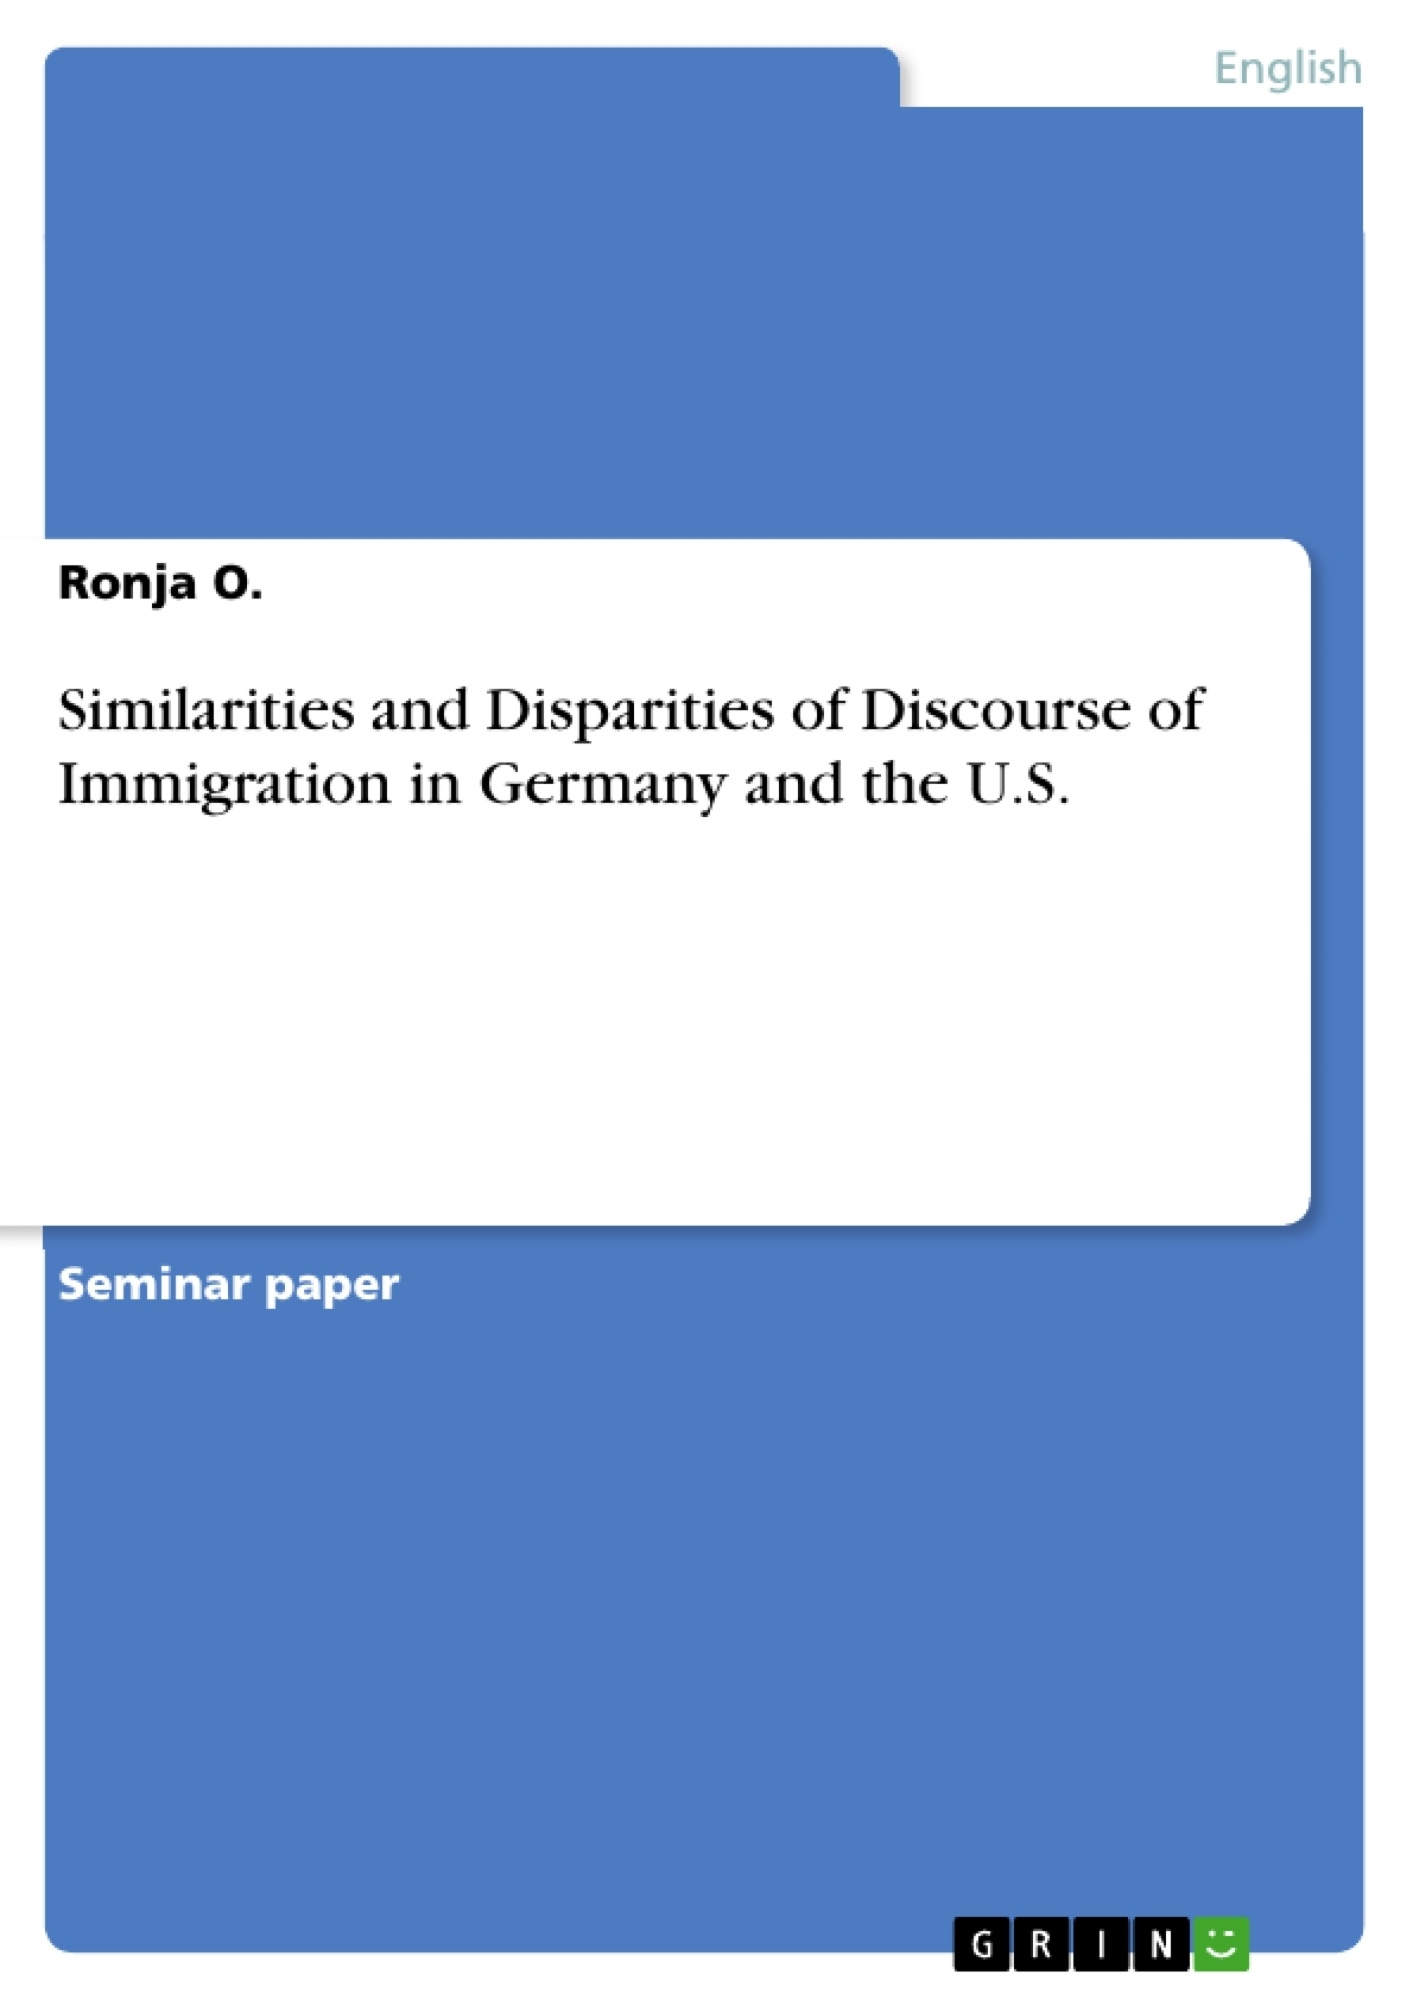 Title: Similarities and Disparities of Discourse of Immigration in Germany and the U.S.